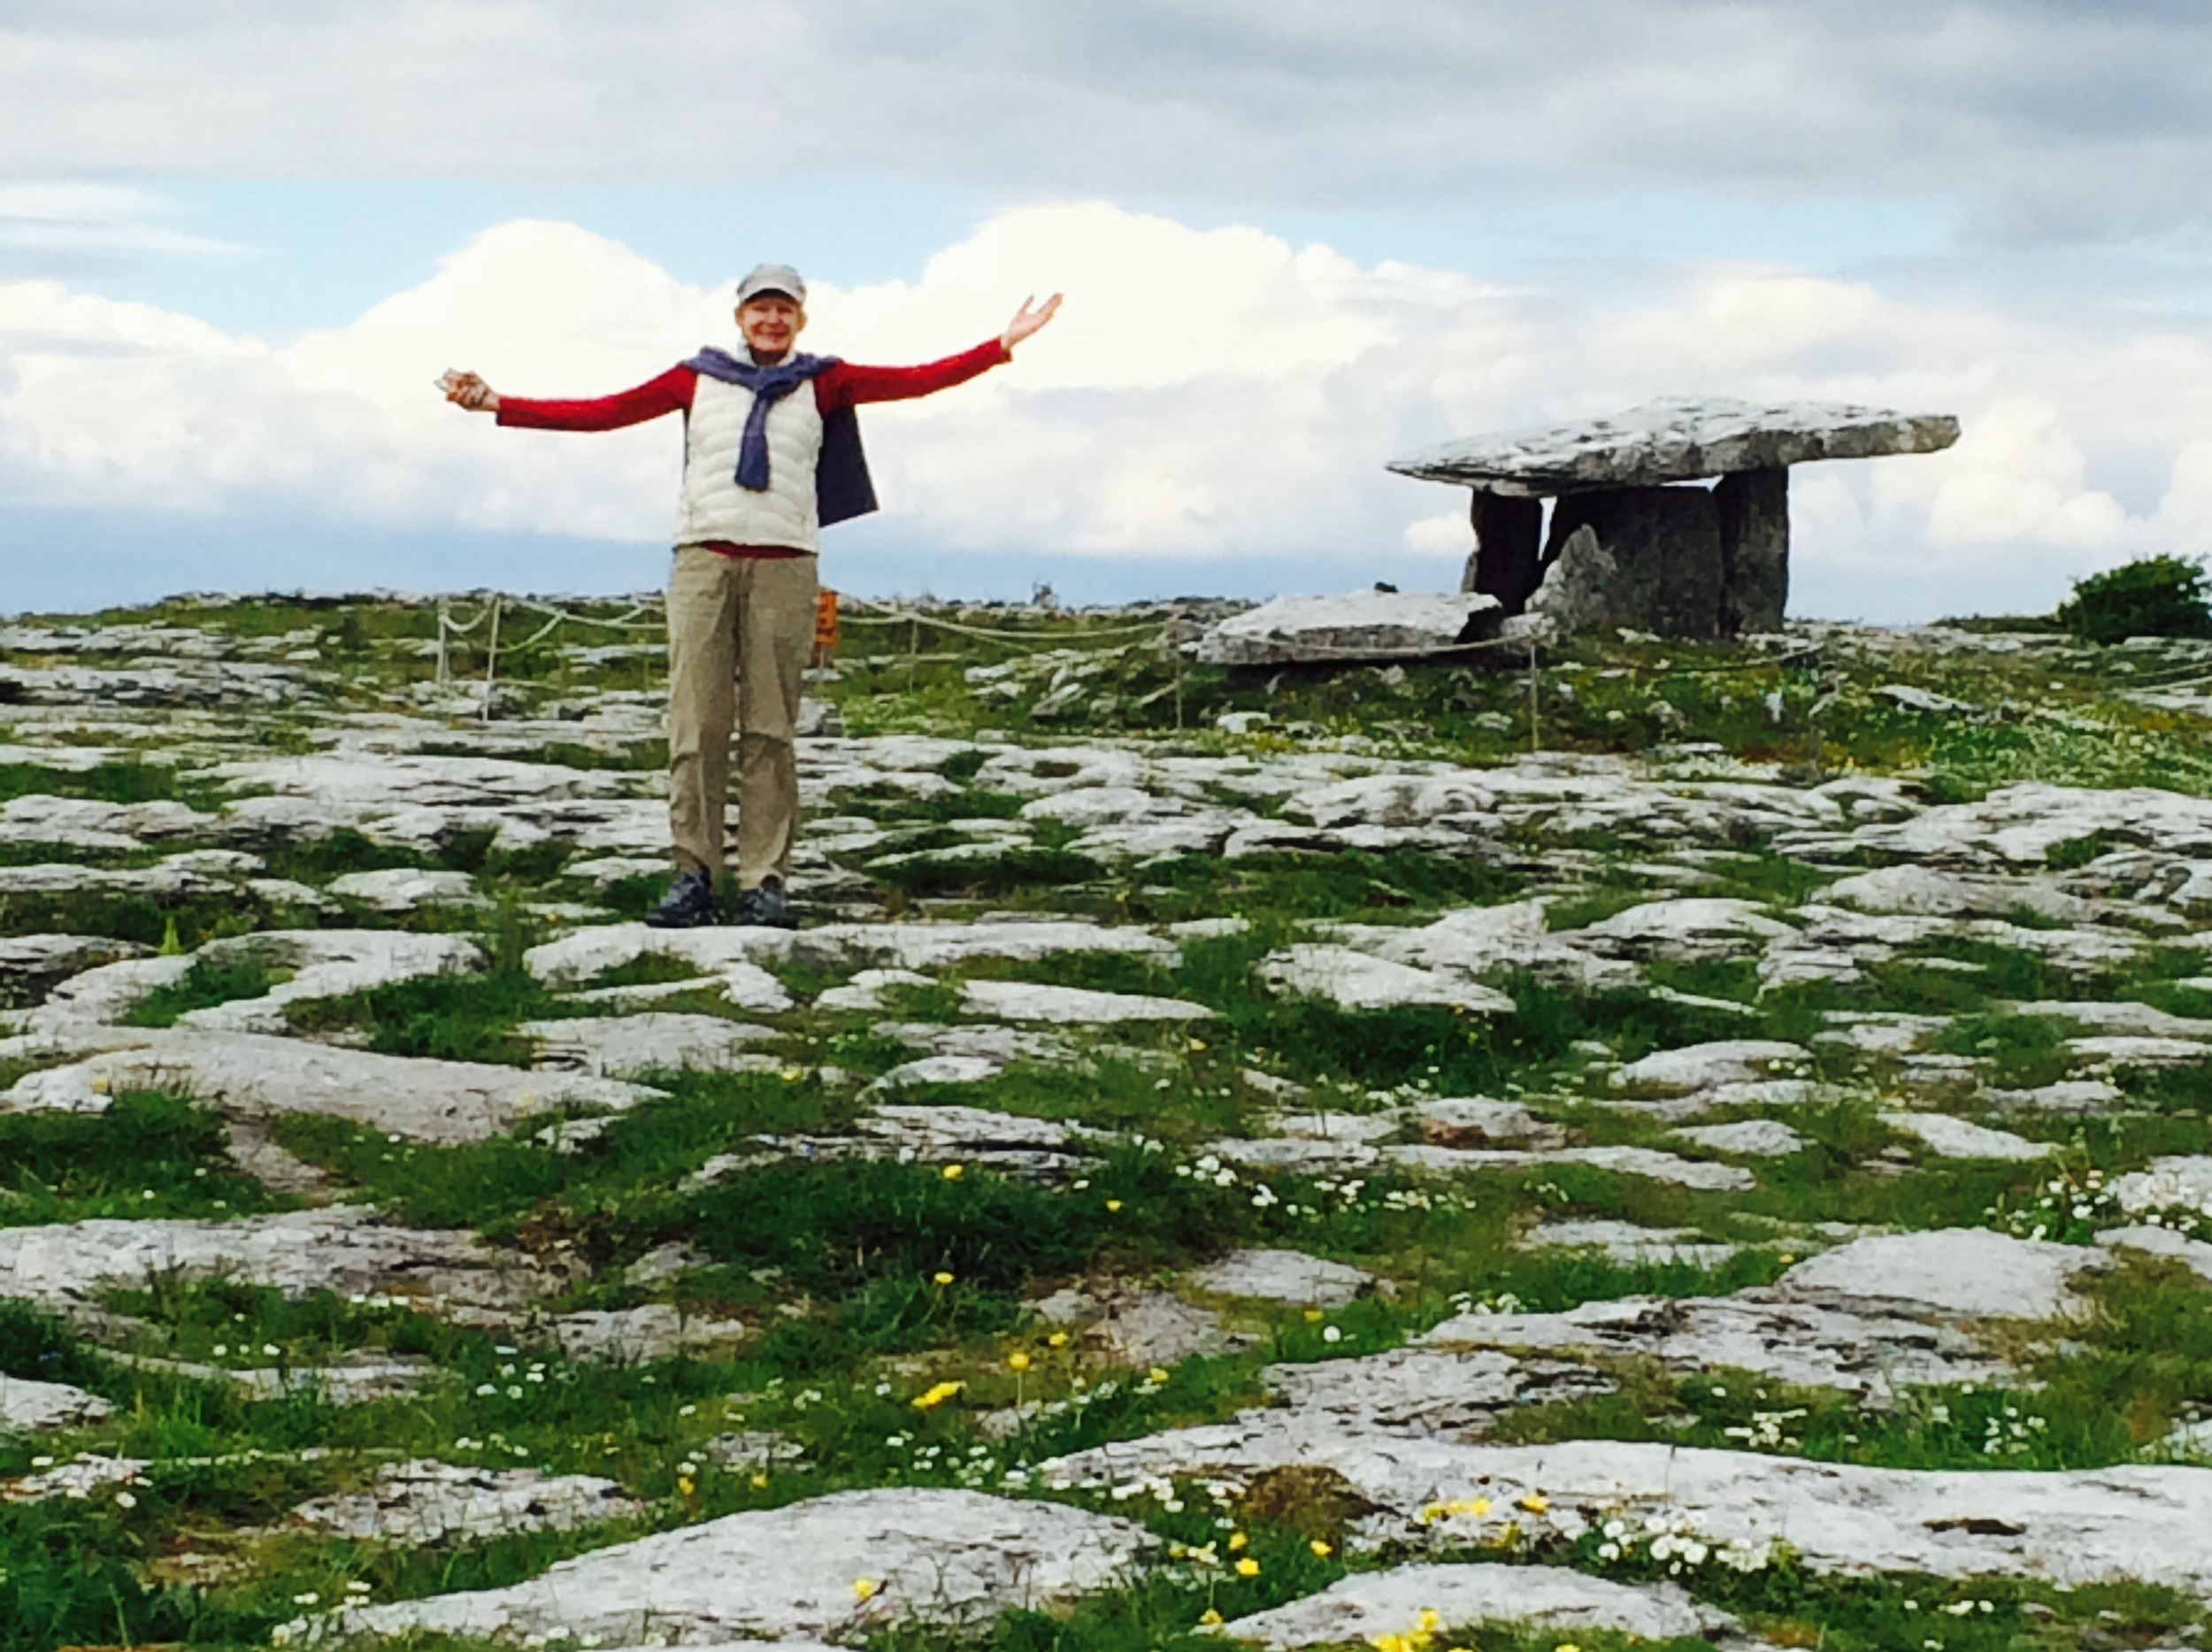 Poulnabrone dolmen  in the Burren, a 5000 year old Neolithic tomb. Contrary to popular opinion, I did not just emerge from the tomb.